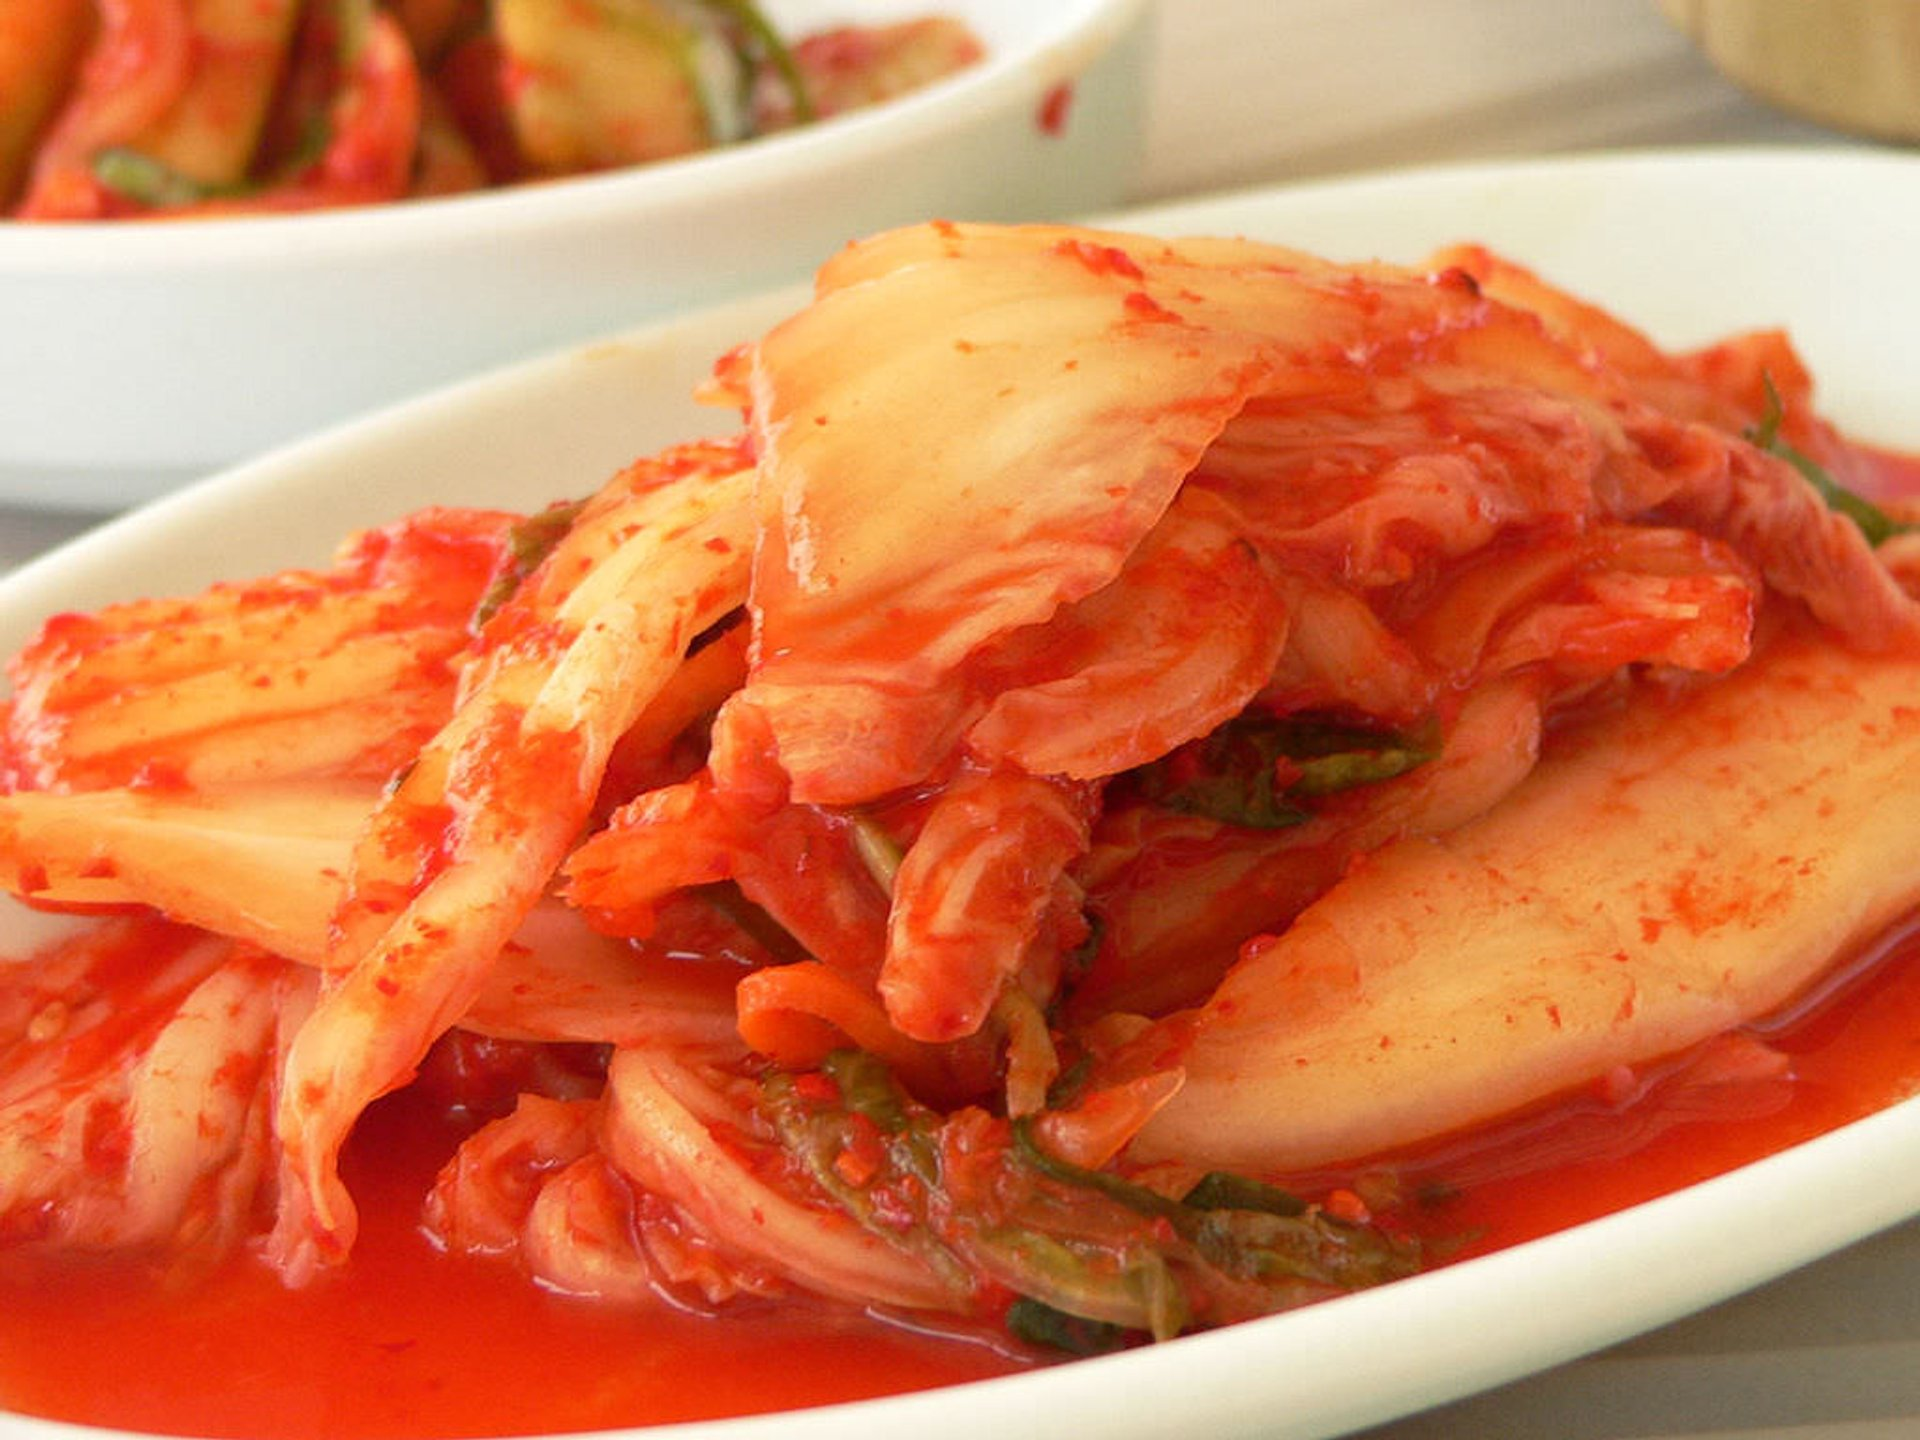 Plate of kimchi 2020